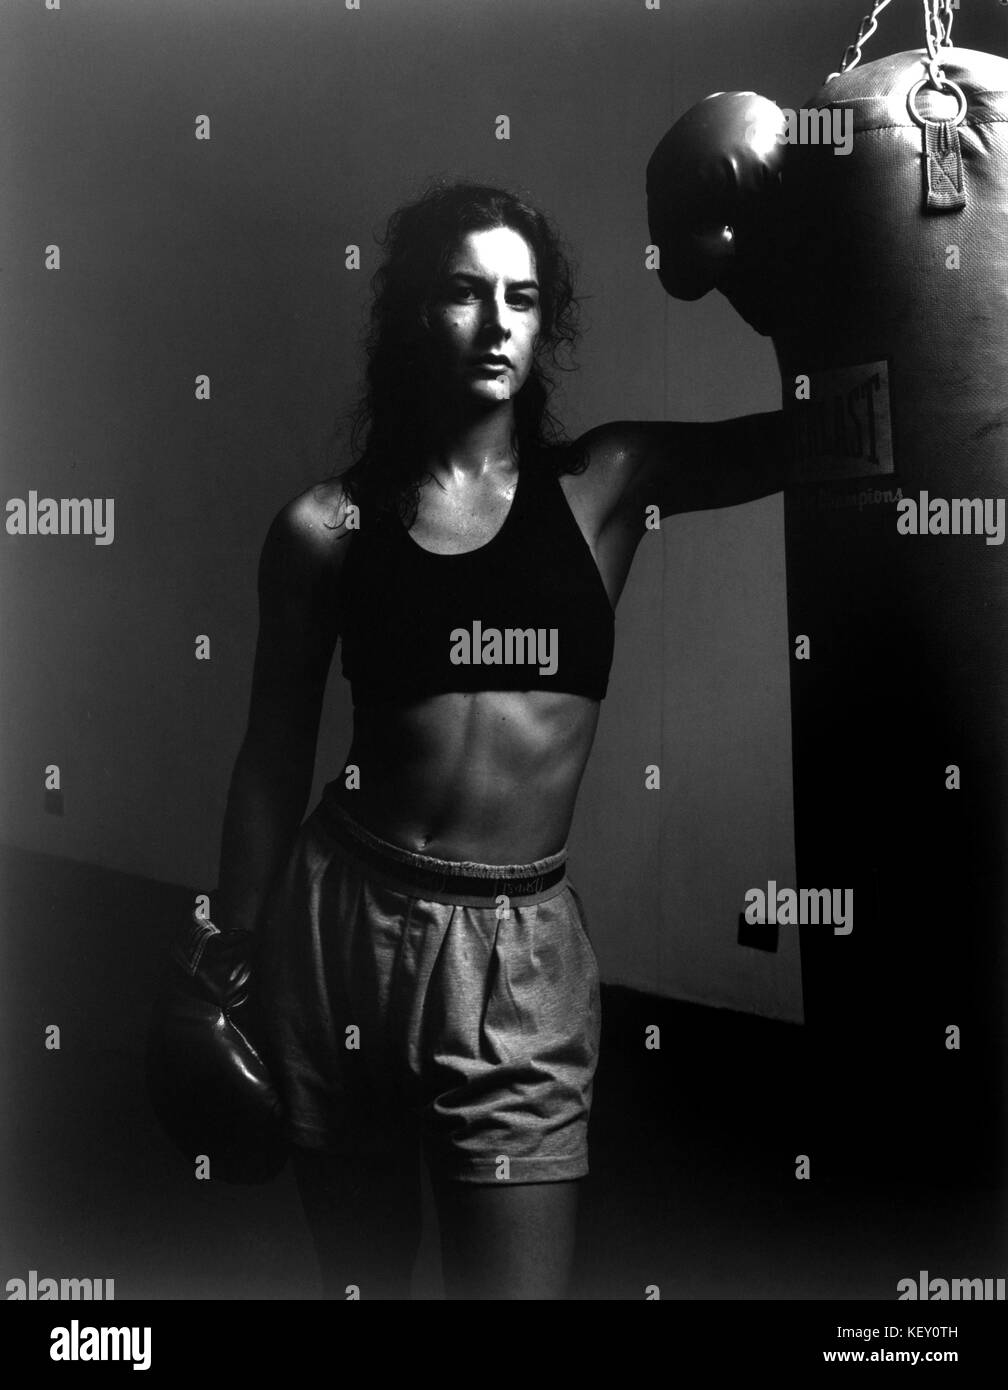 Woman/Girl in boxing gym after workout - Stock Image